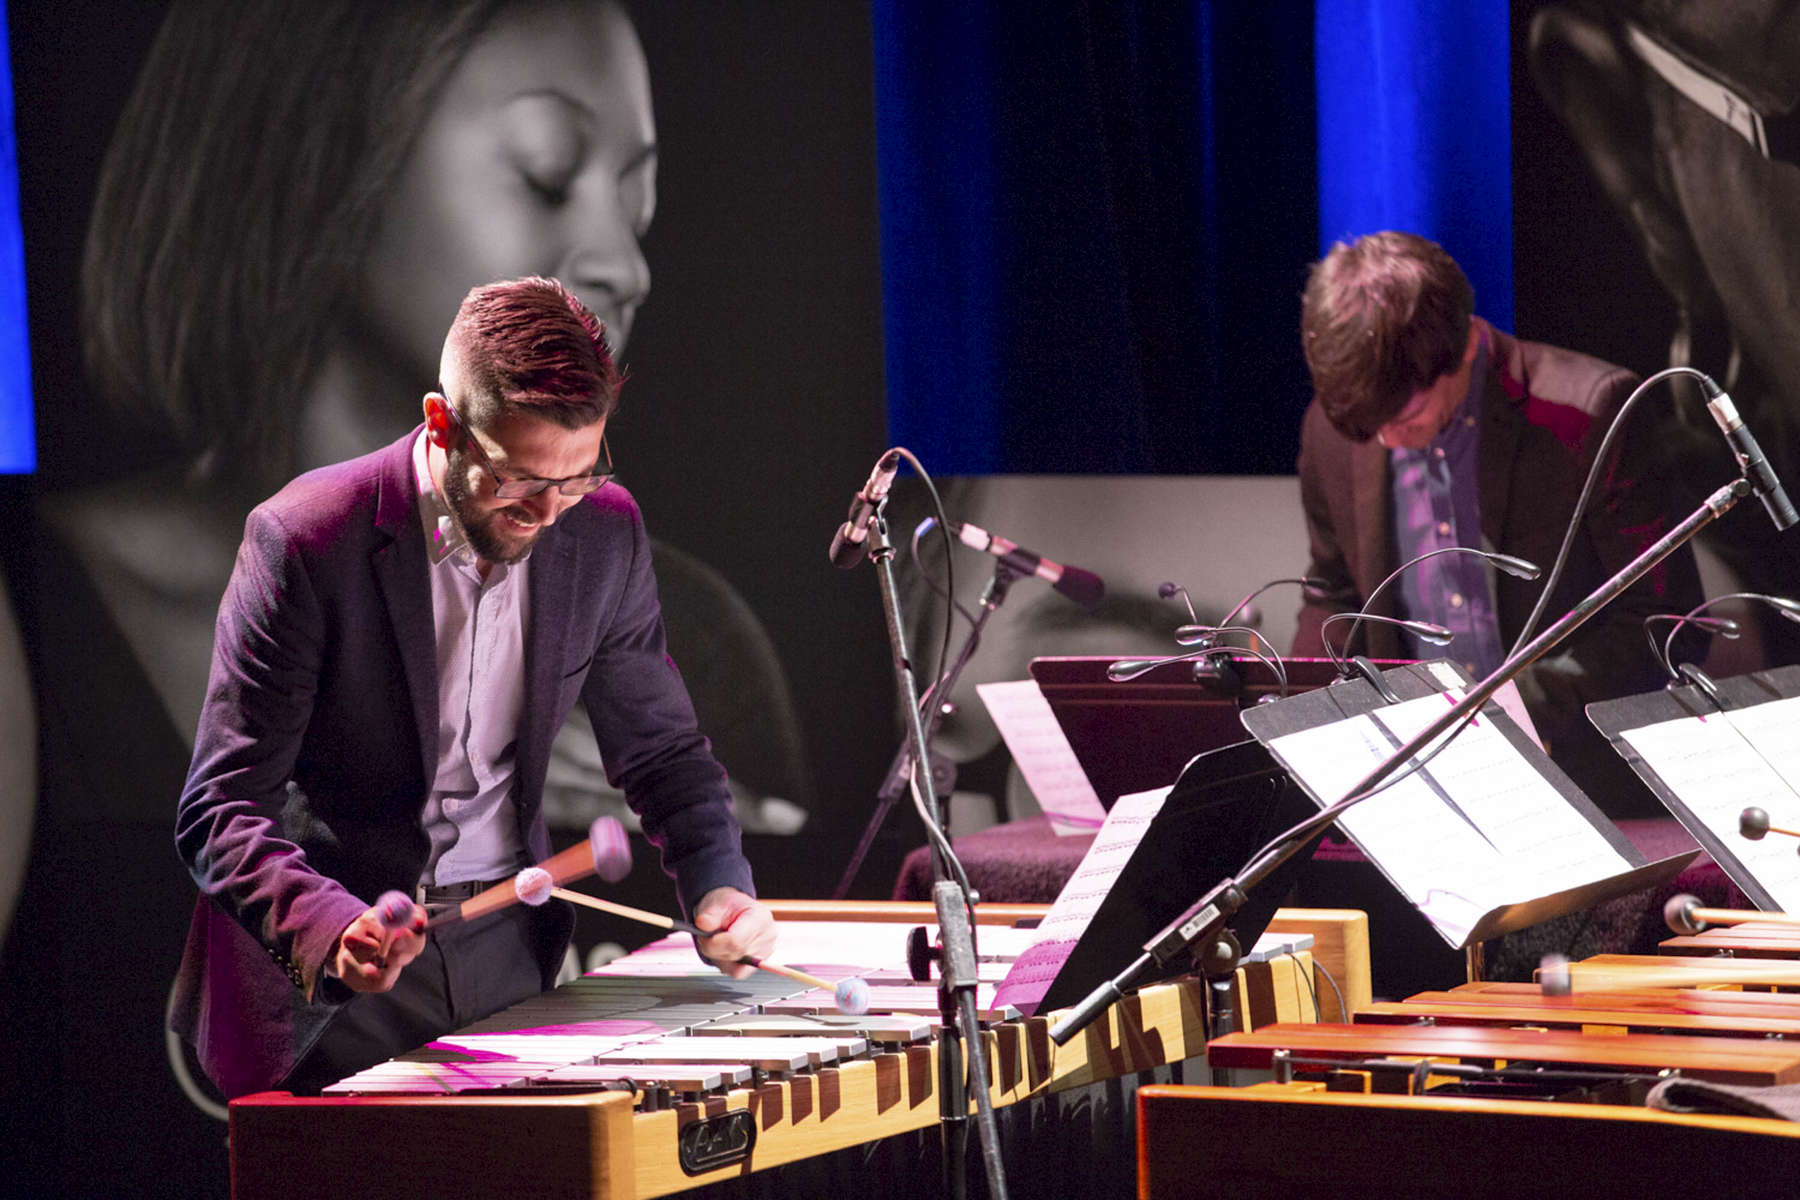 """CHICAGO, IL - OCTOBER 17: Third Coast Percussion, a Grammy-winning Percussion Quartet, perform for a full house during """"Radical Creators: The Cultural Leaders Defining the Zeitgeist"""" at the Edlis Neeson Theater. (Photo by Beth Rooney/Chicago Ideas Week)"""